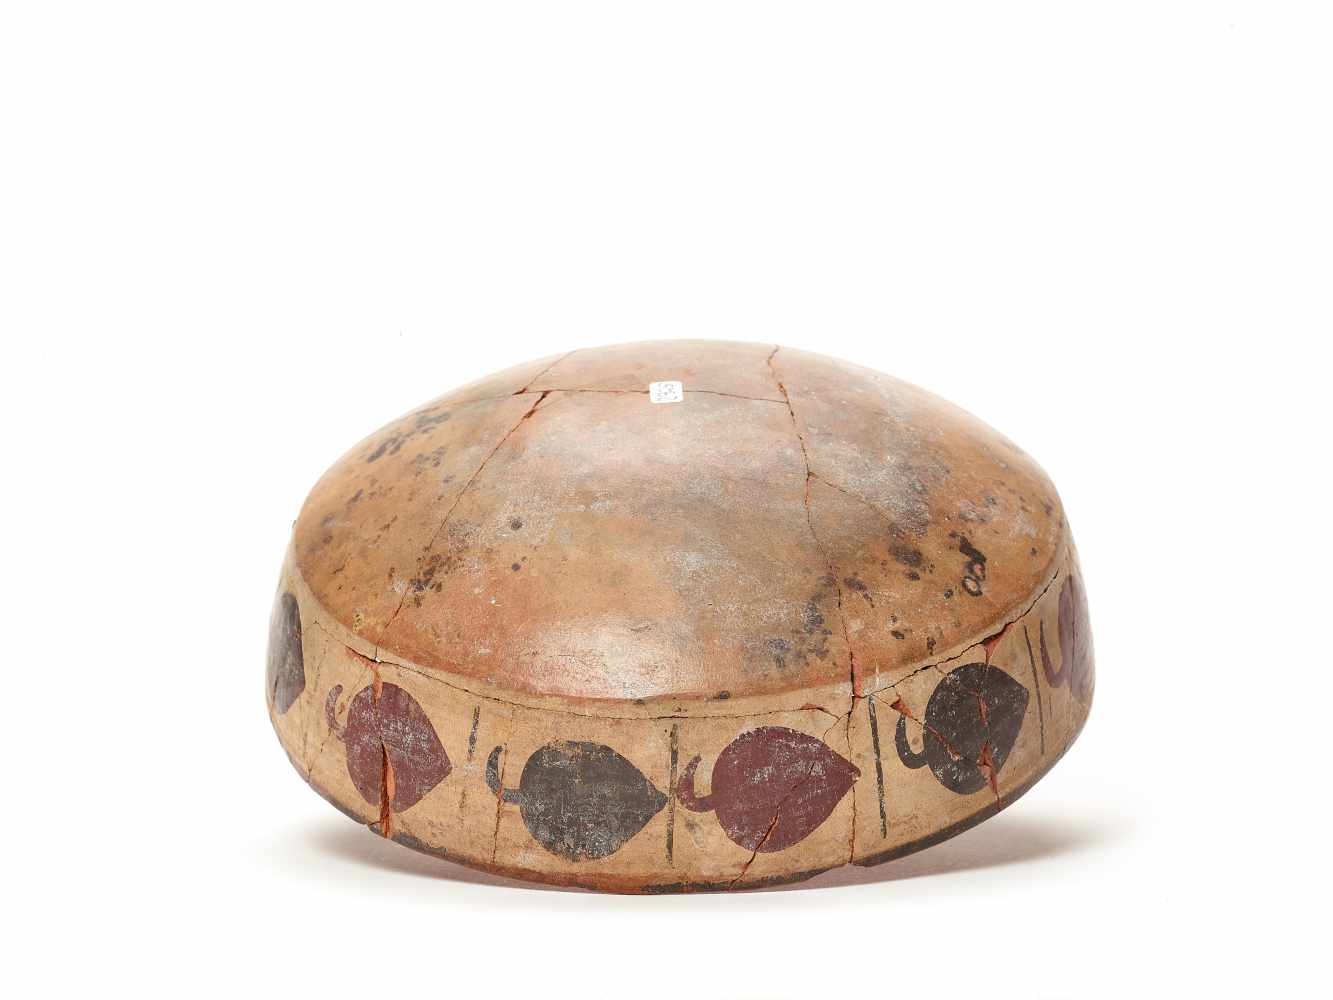 BOWL WITH BAND DECORATION - NAZCA, PERU, C. 300-600 ADPainted clayNazca, Peru, c. 300-600 ADArched - Image 5 of 5